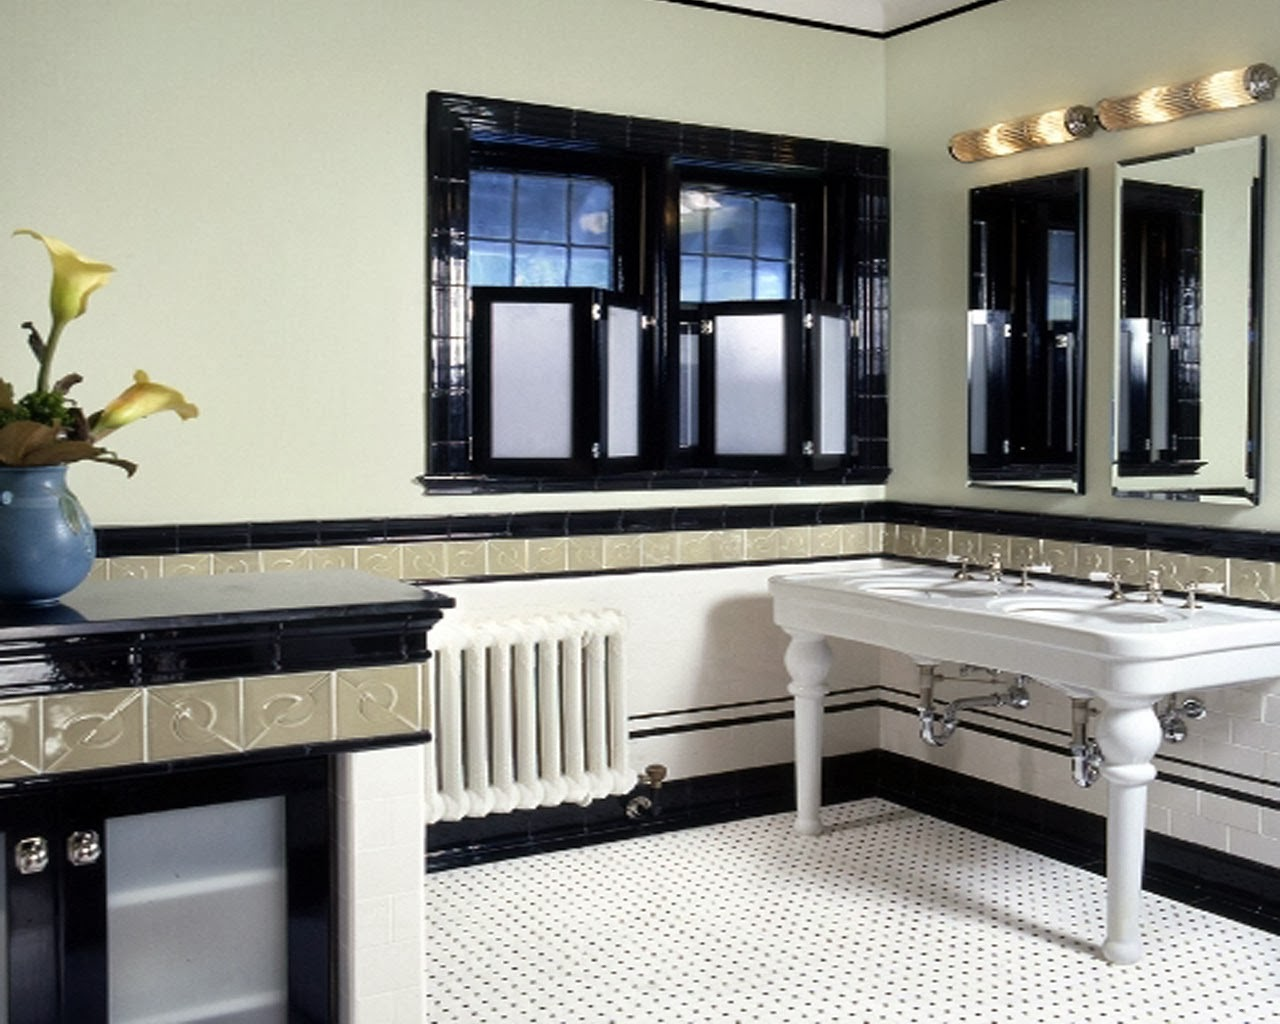 david dangerous art deco bathroom. Black Bedroom Furniture Sets. Home Design Ideas